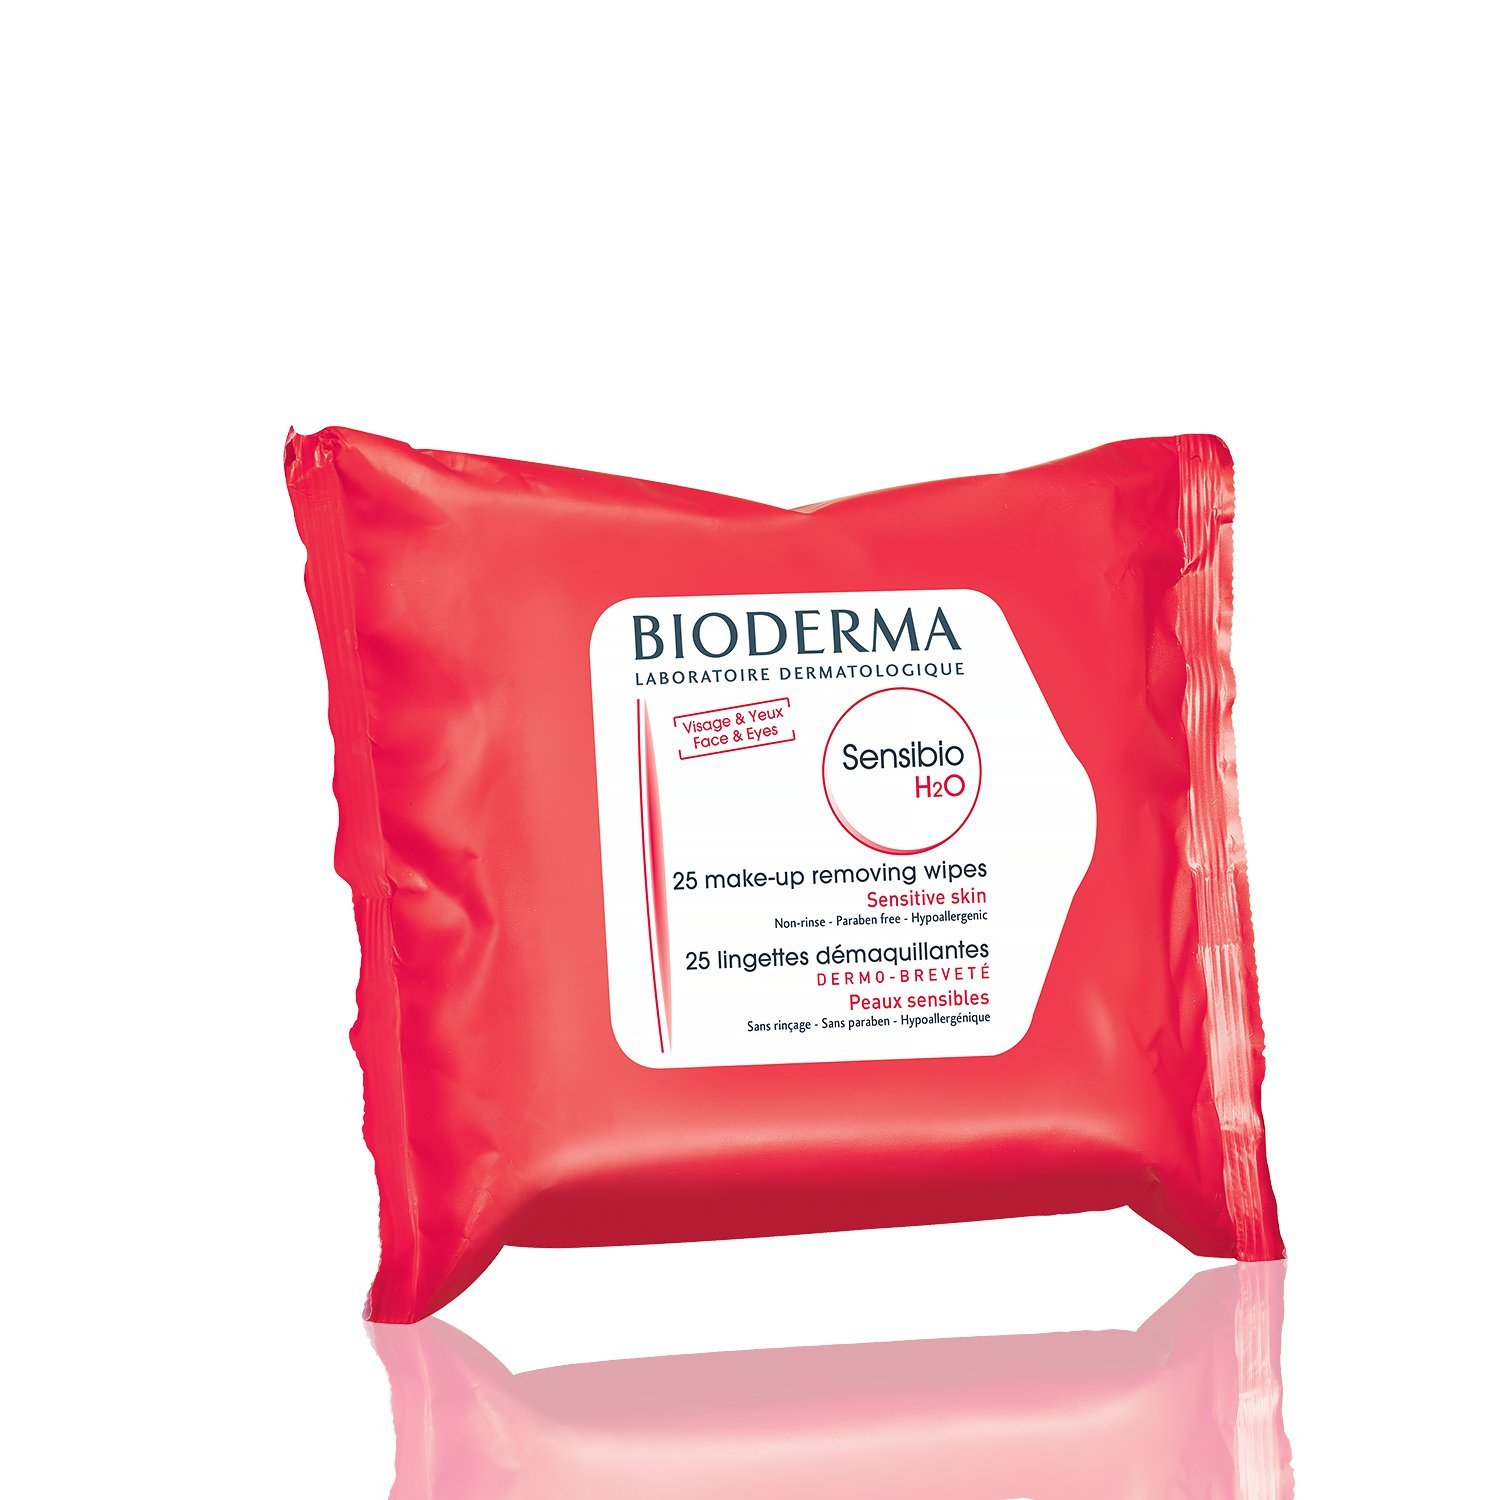 Bioderma Sensibio H2O Micelle Solution Make-Up Removing Wipes 25 Wipes: Amazon.es: Belleza